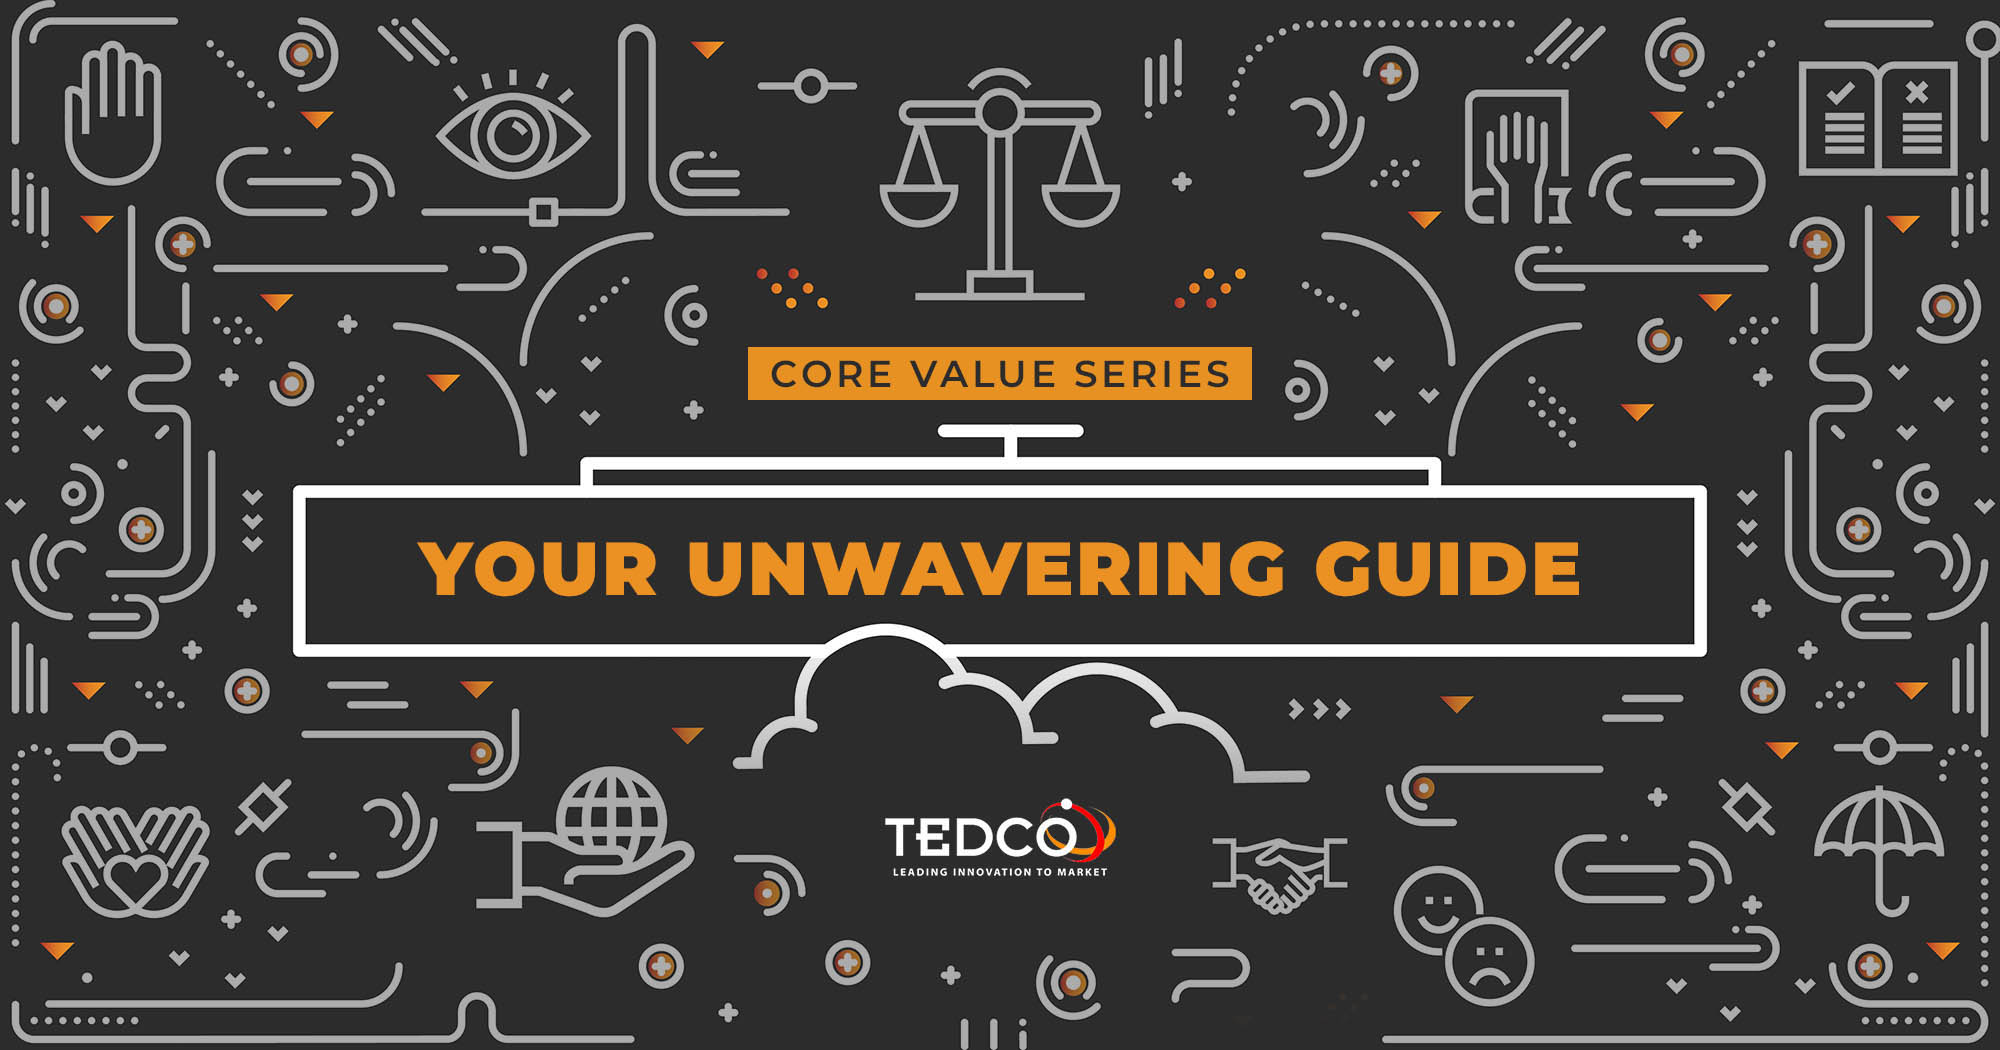 Core Values: Your Unwavering Guide